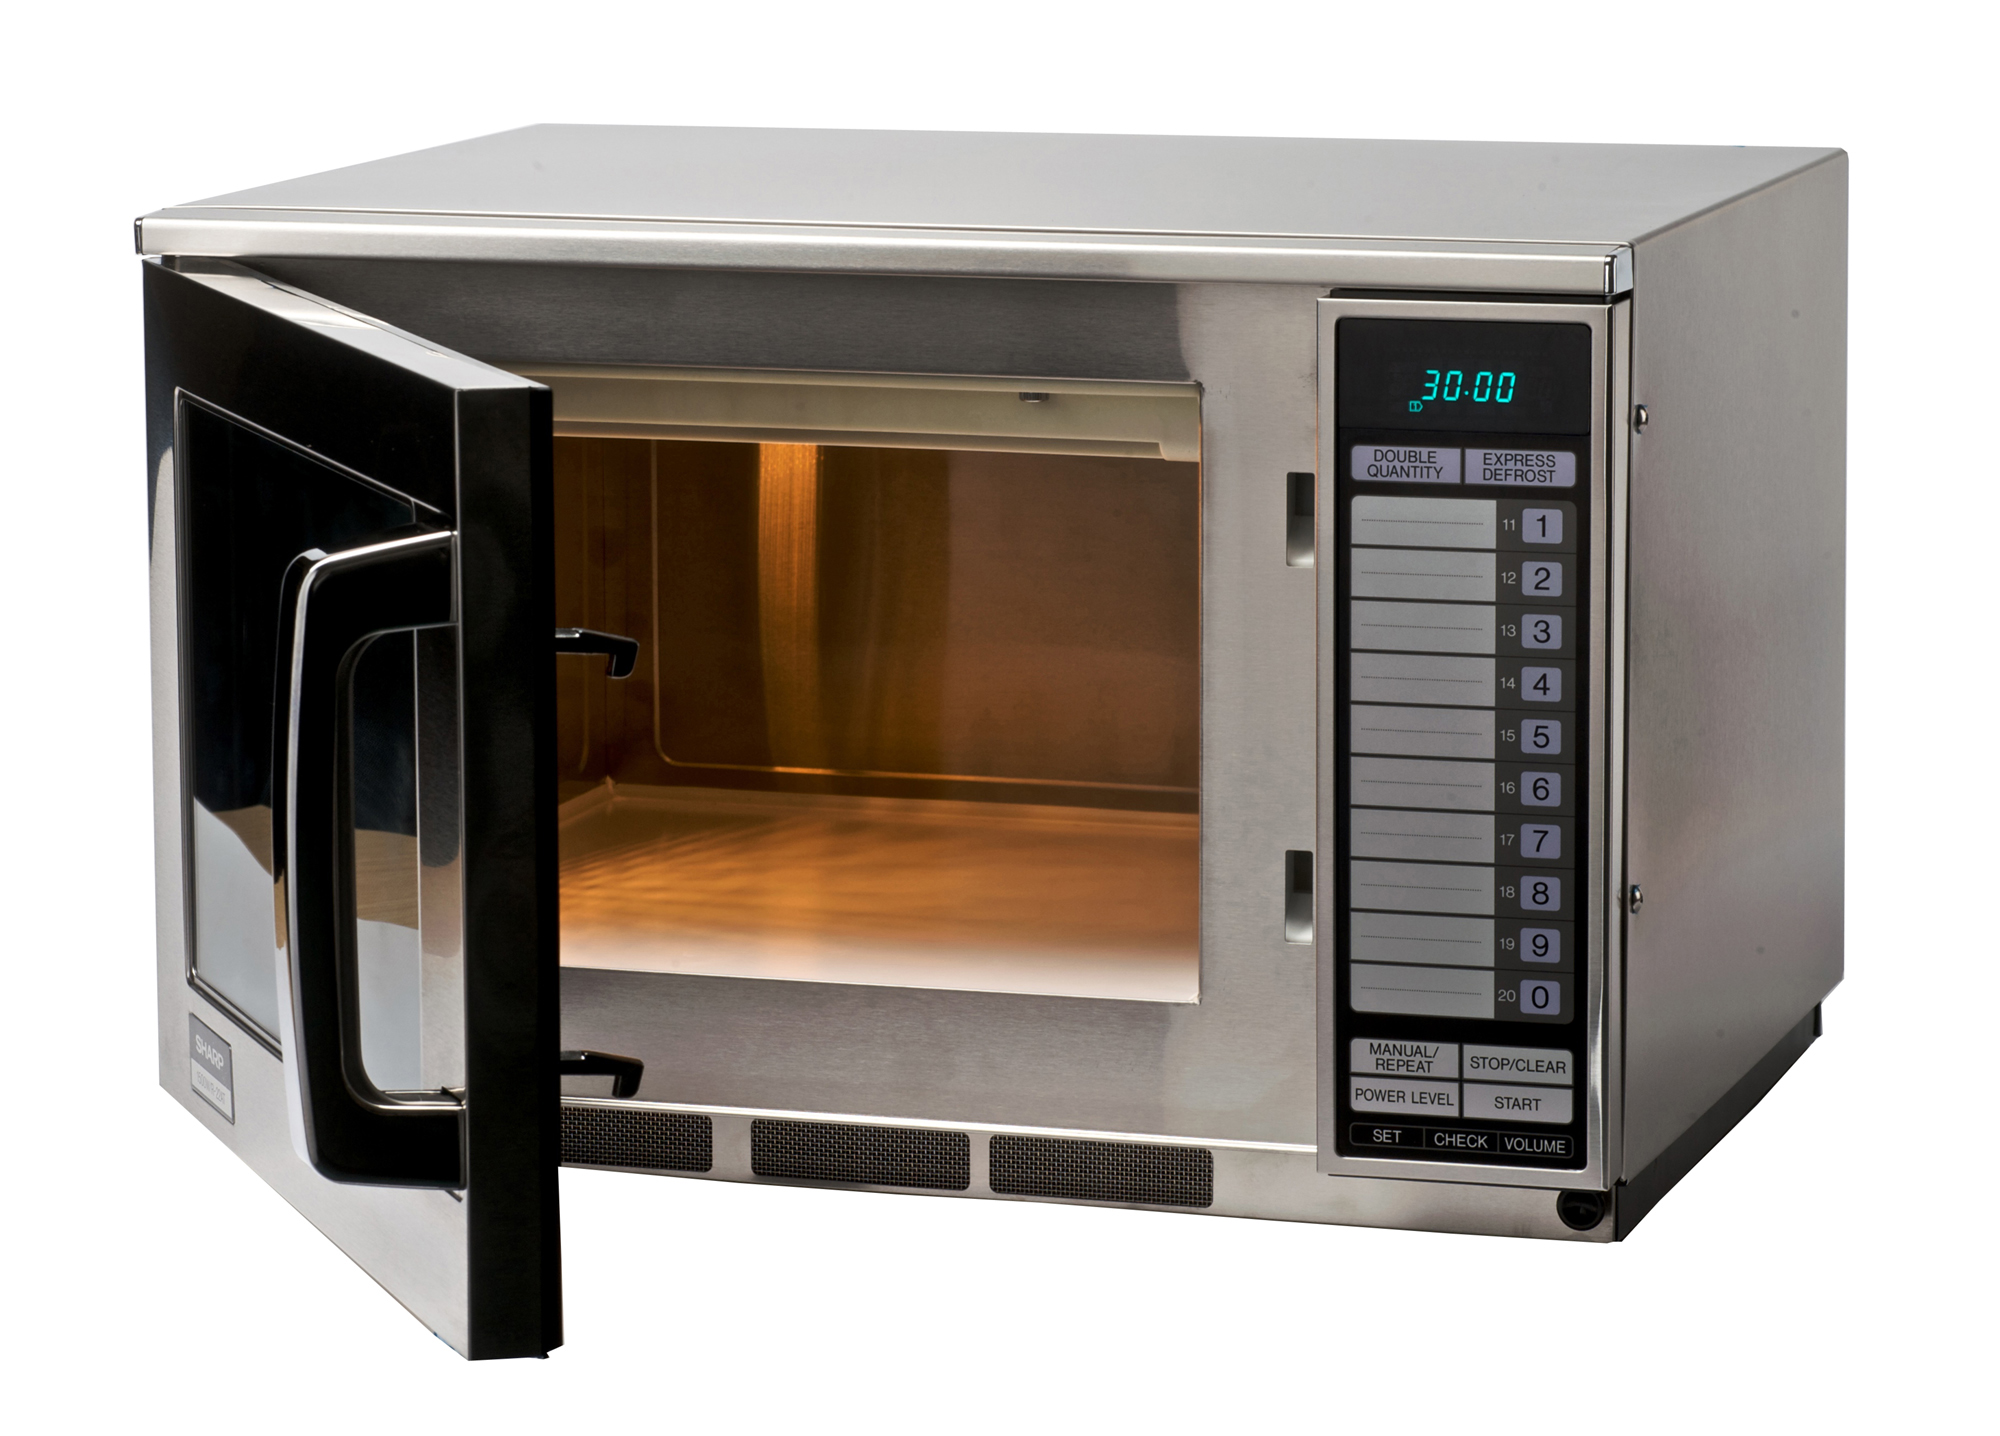 Regalesharp R24at 1900w Heavy Duty Commercial Microwave Oven